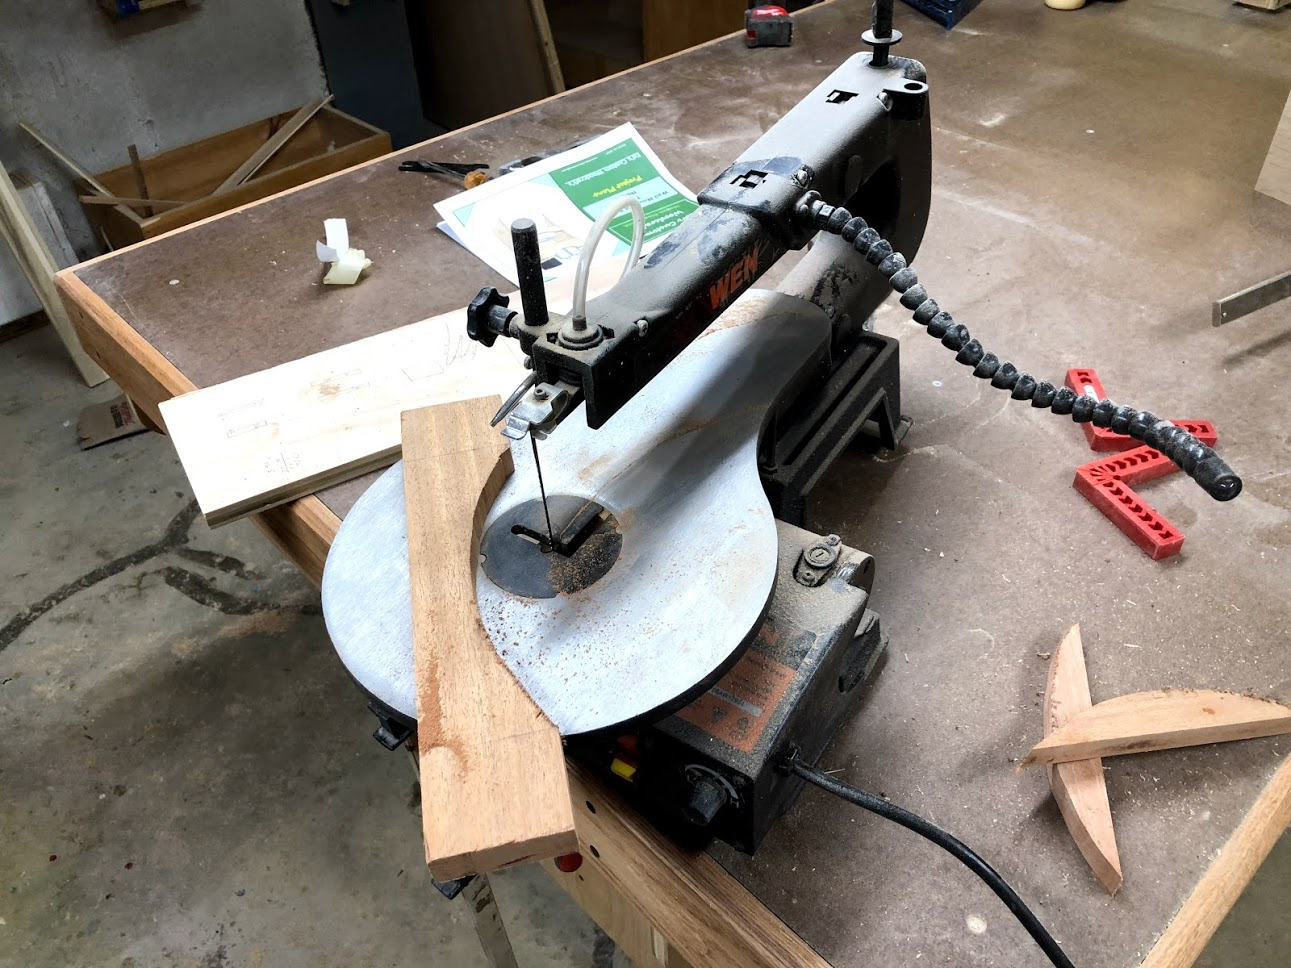 My band saw would of been a better choice to cut out the curve but needs a new blade, so I used my scroll saw to rough out the curve.